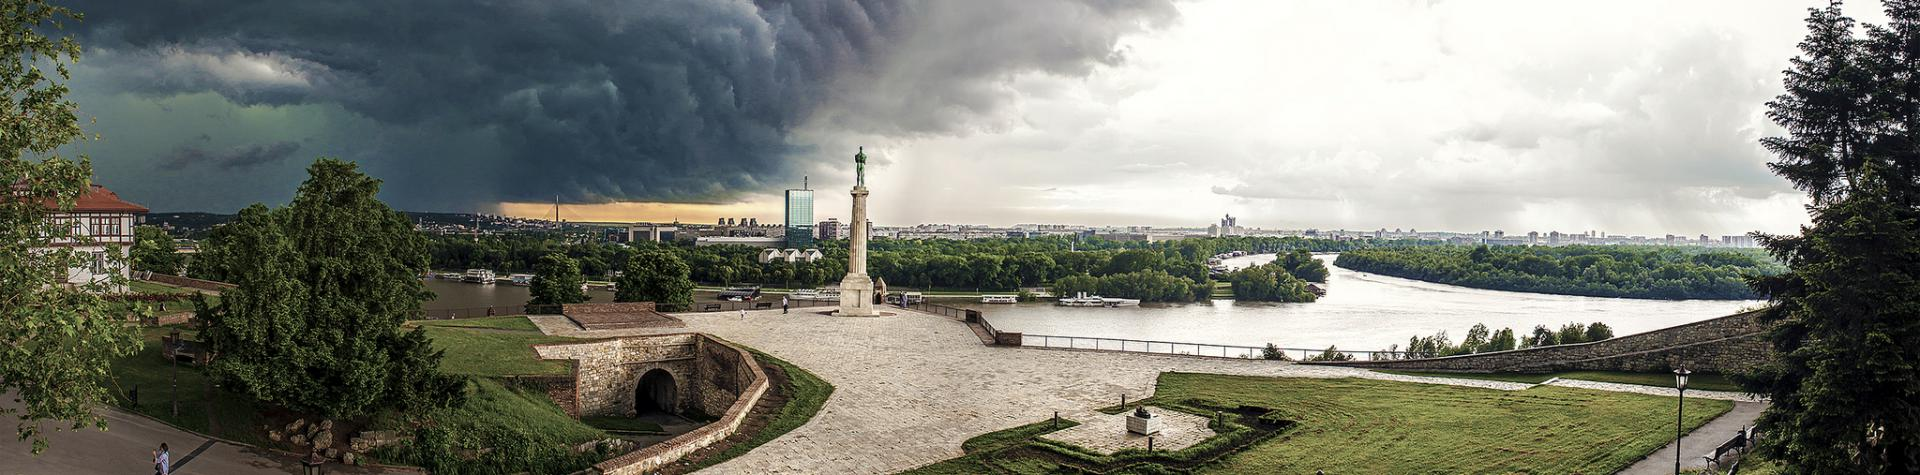 Kalemegdan fortress in Belgrade Chasing the Storm